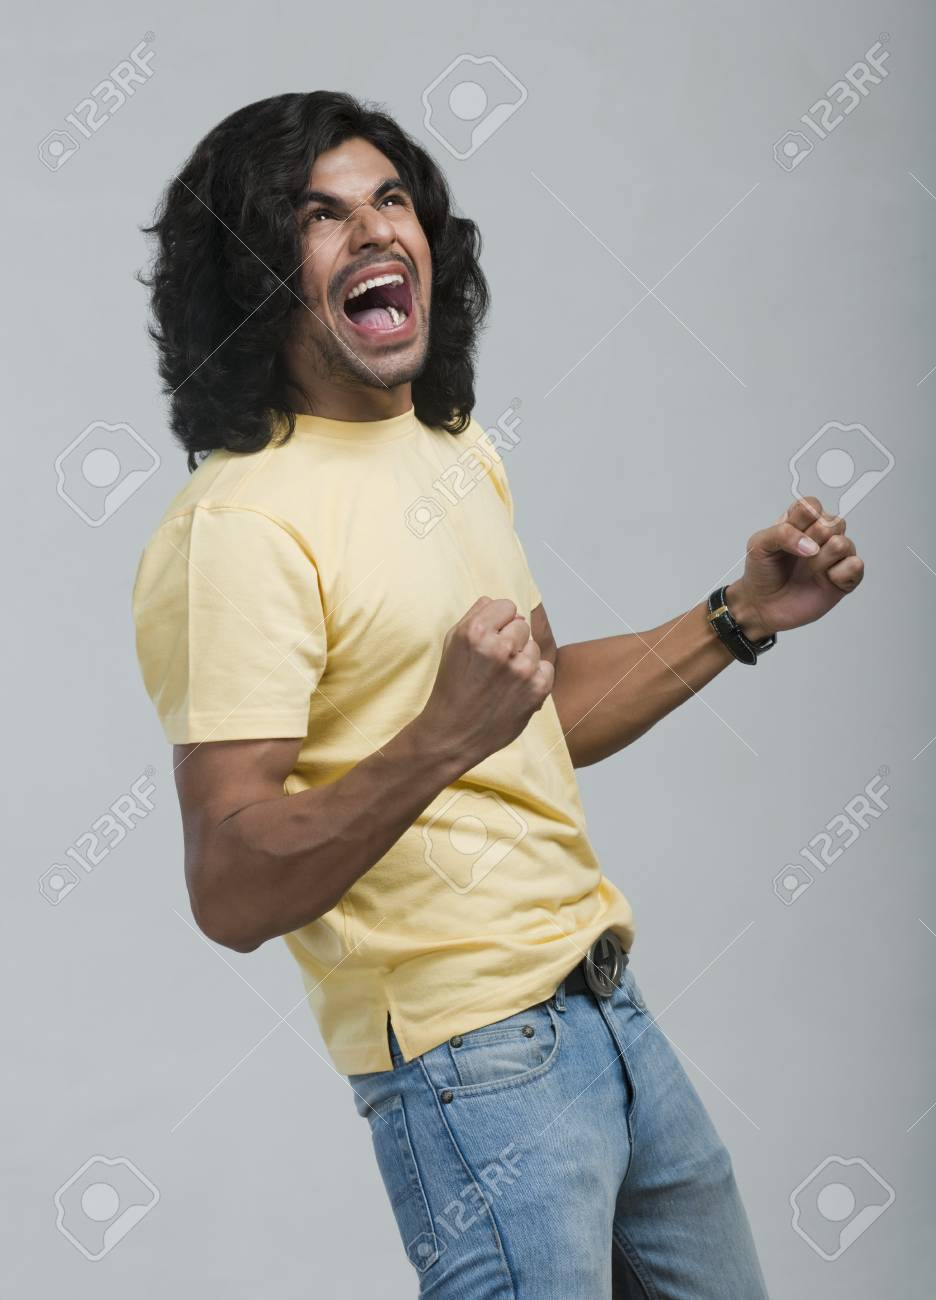 Close-up of a man cheering Stock Photo - 10168070